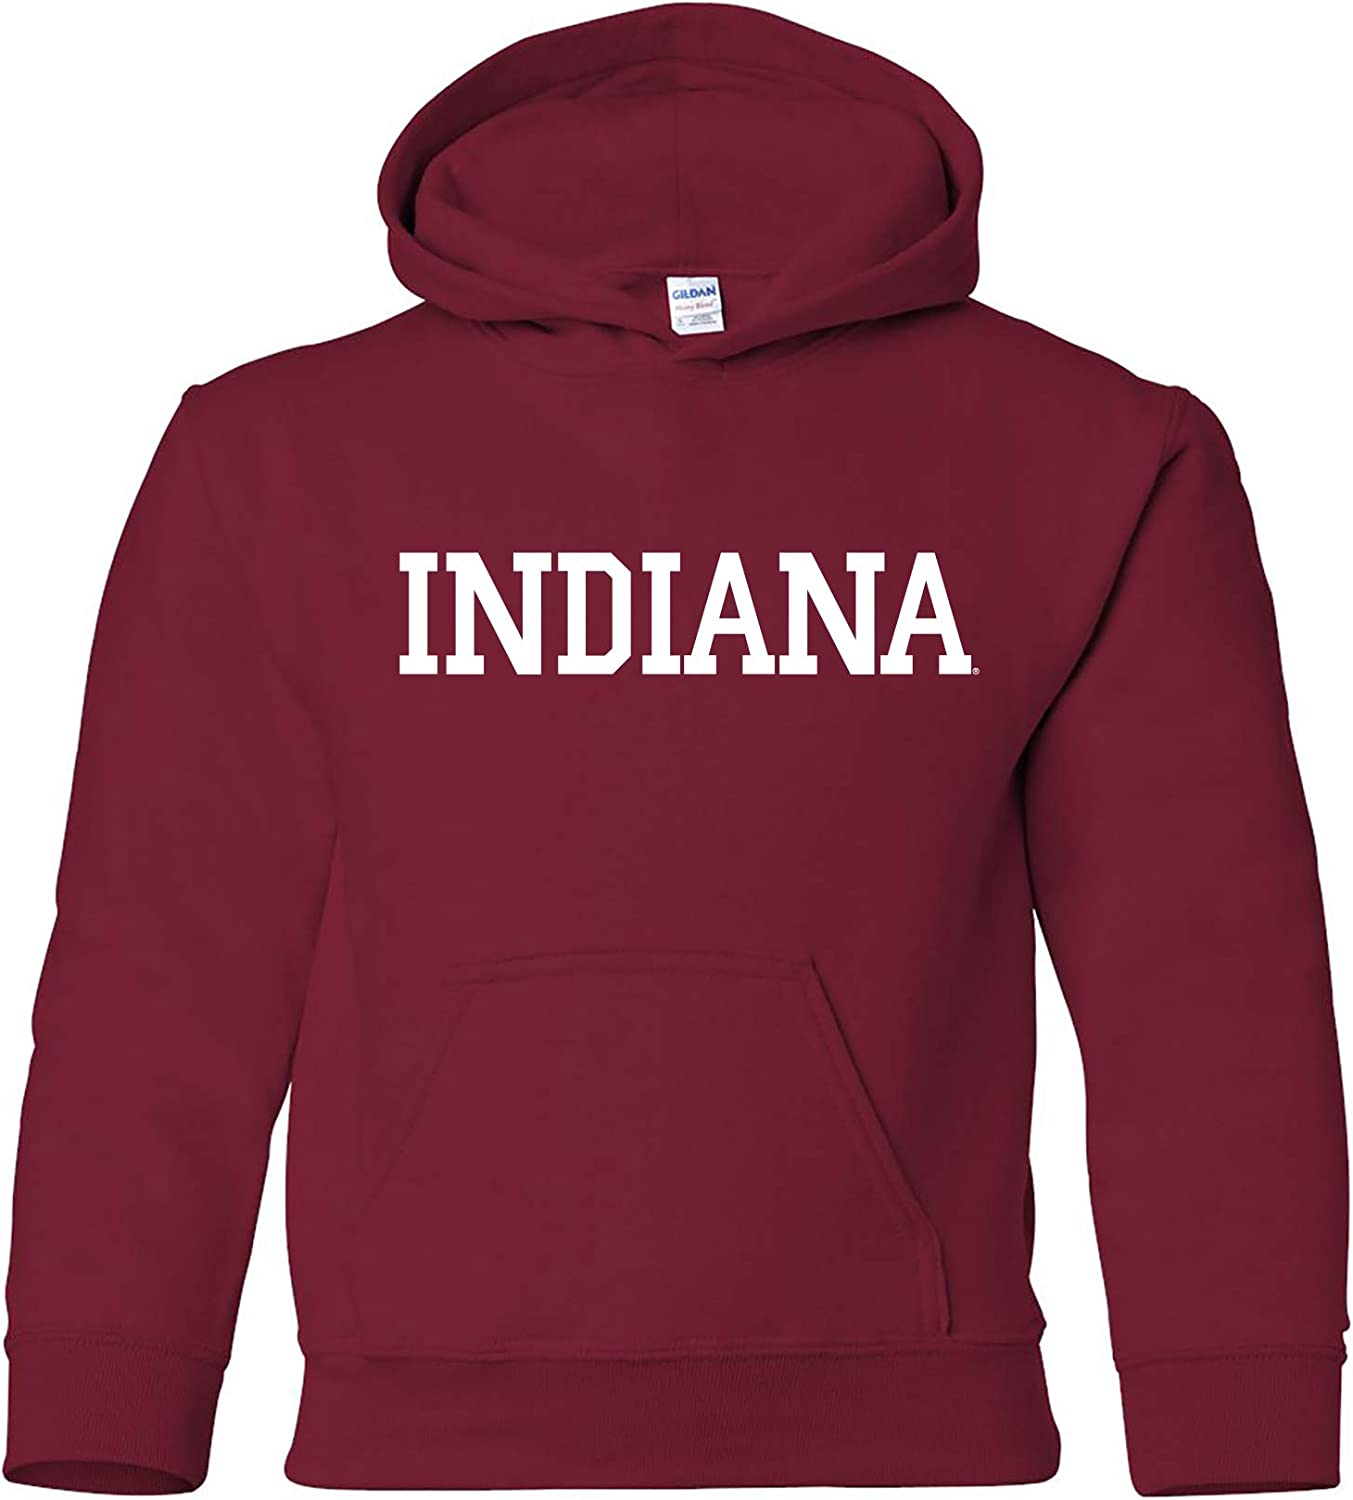 New  NCAA Indiana Hoosiers Pullover Hoodie Screen Printed  Youth and Toddler